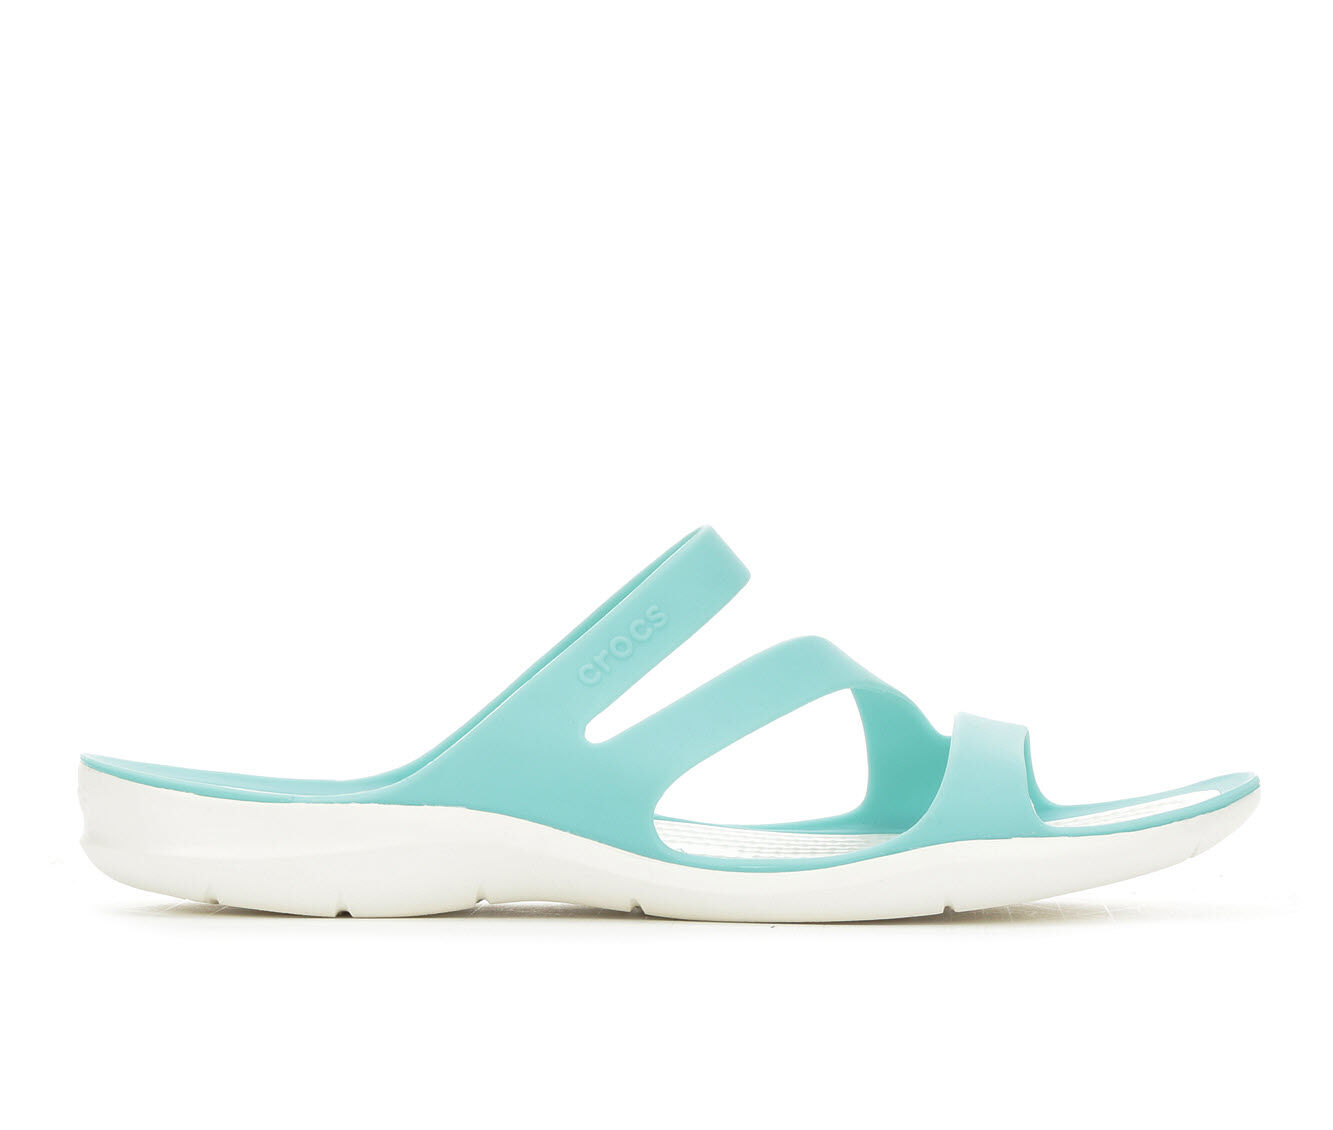 Special Deals Women's Crocs Swiftwater Strappy Sandals Pool/White